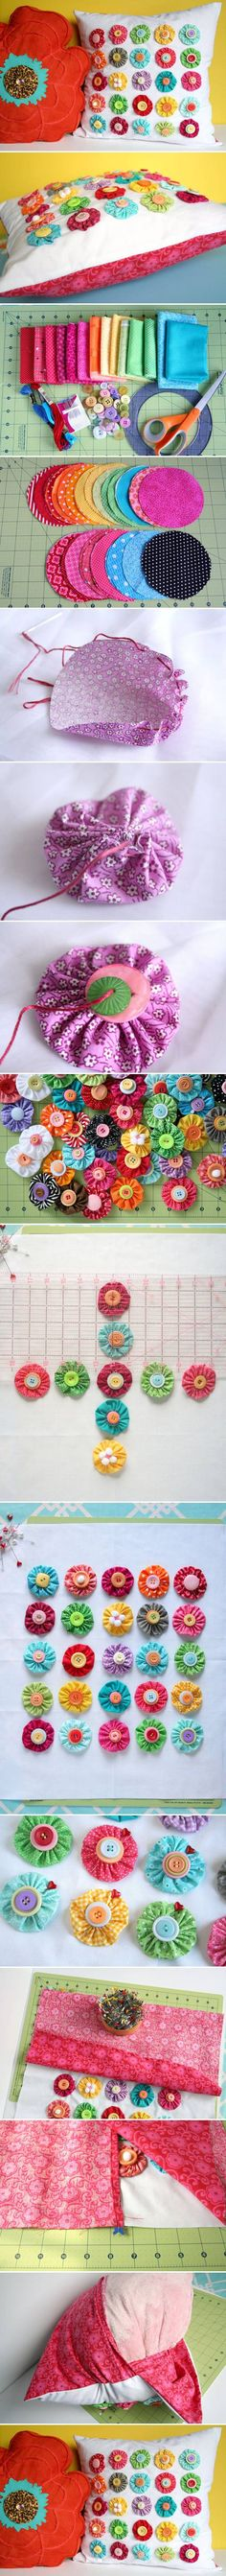 DIY Fabric Decorative Flowers Click www.faveed.com for more craft ideas!